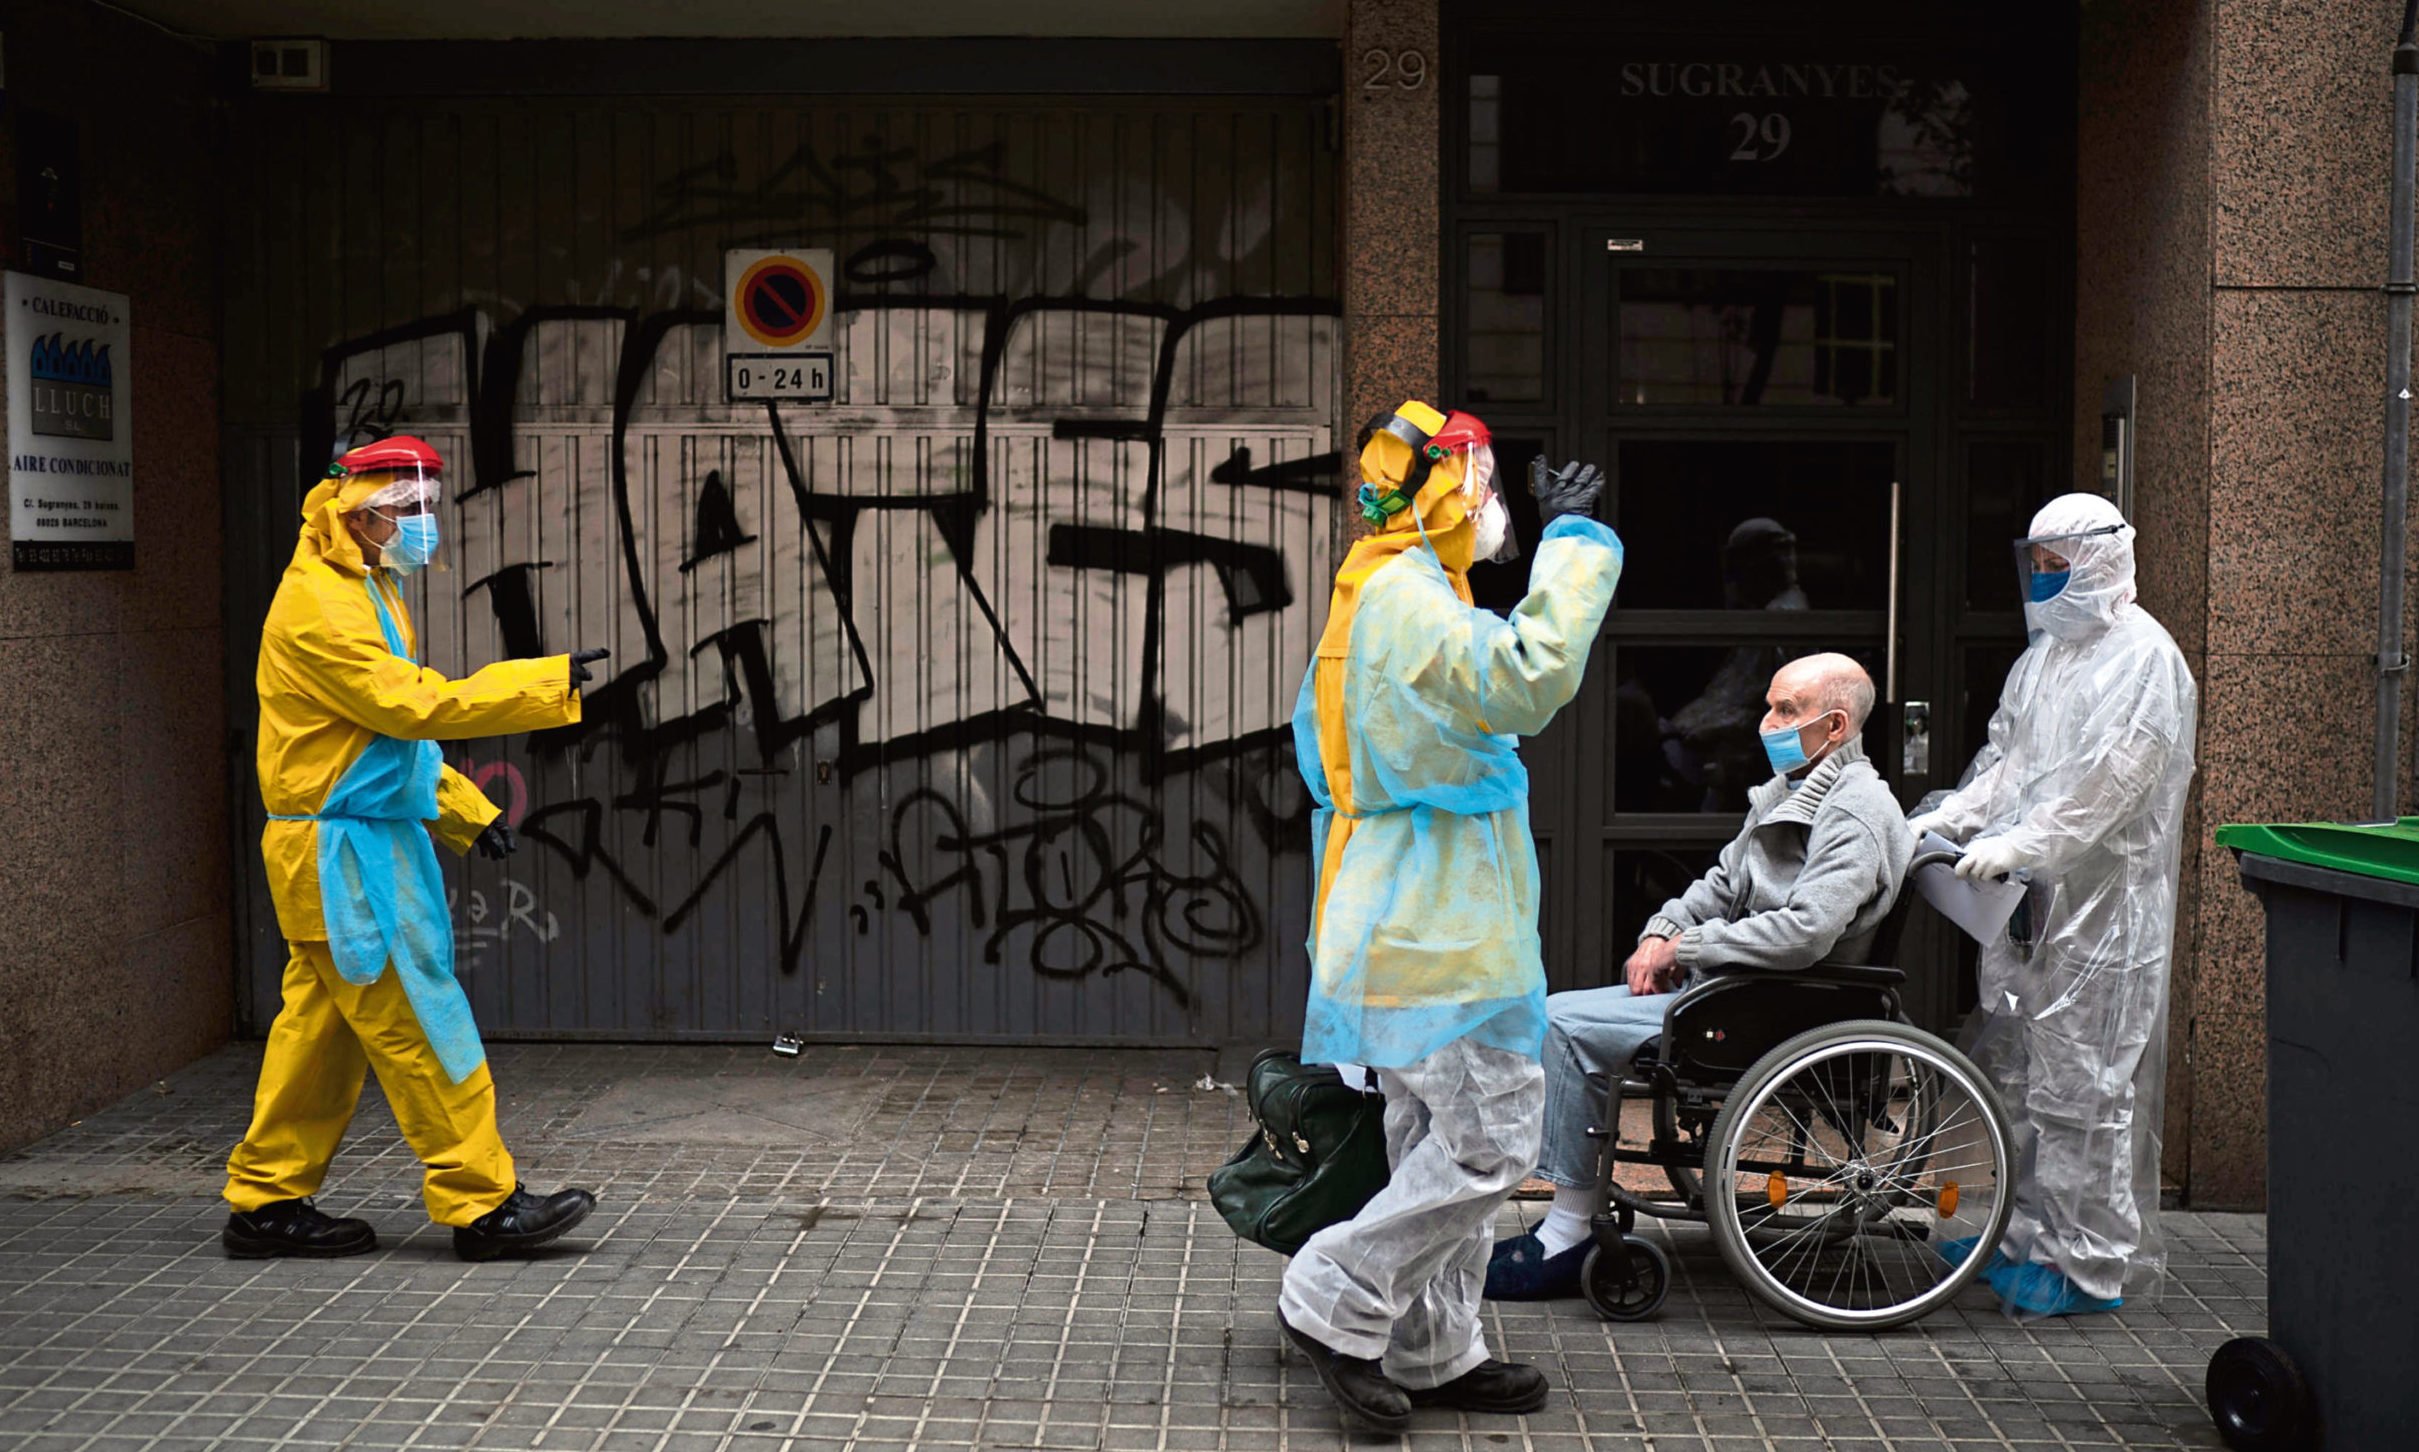 A volunteer of the Spanish NGO Open Arms pushes in a wheelchair an elderly resident of a nursing home with coronavirus symptoms to an ambulance in Barcelona, Spain.